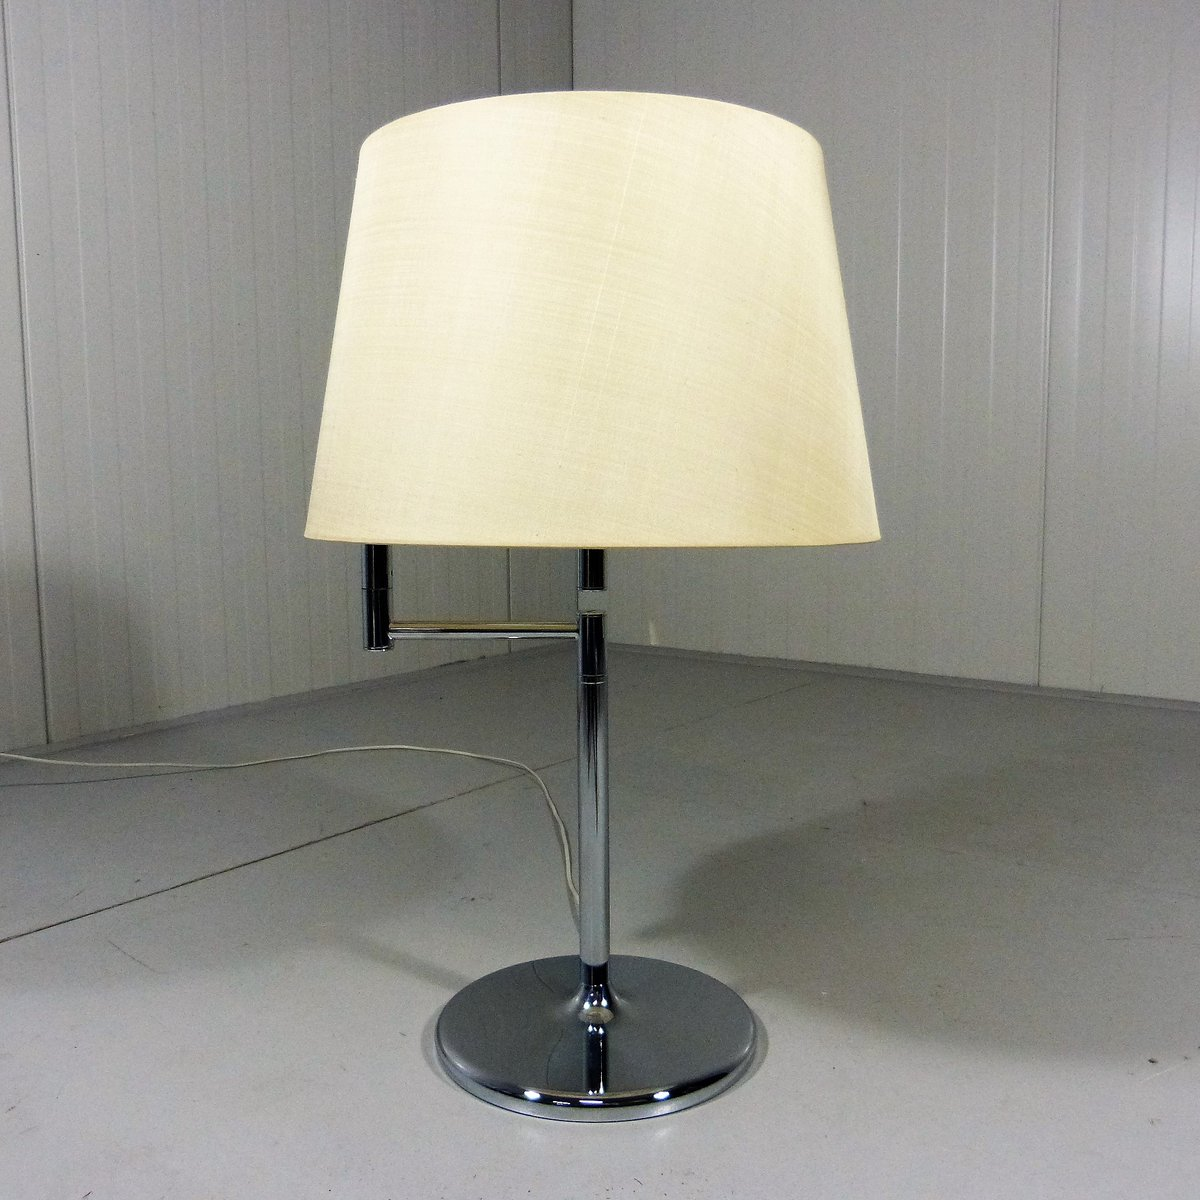 Large Adjustable Table Lamp from Staff Leuchten, 1960s